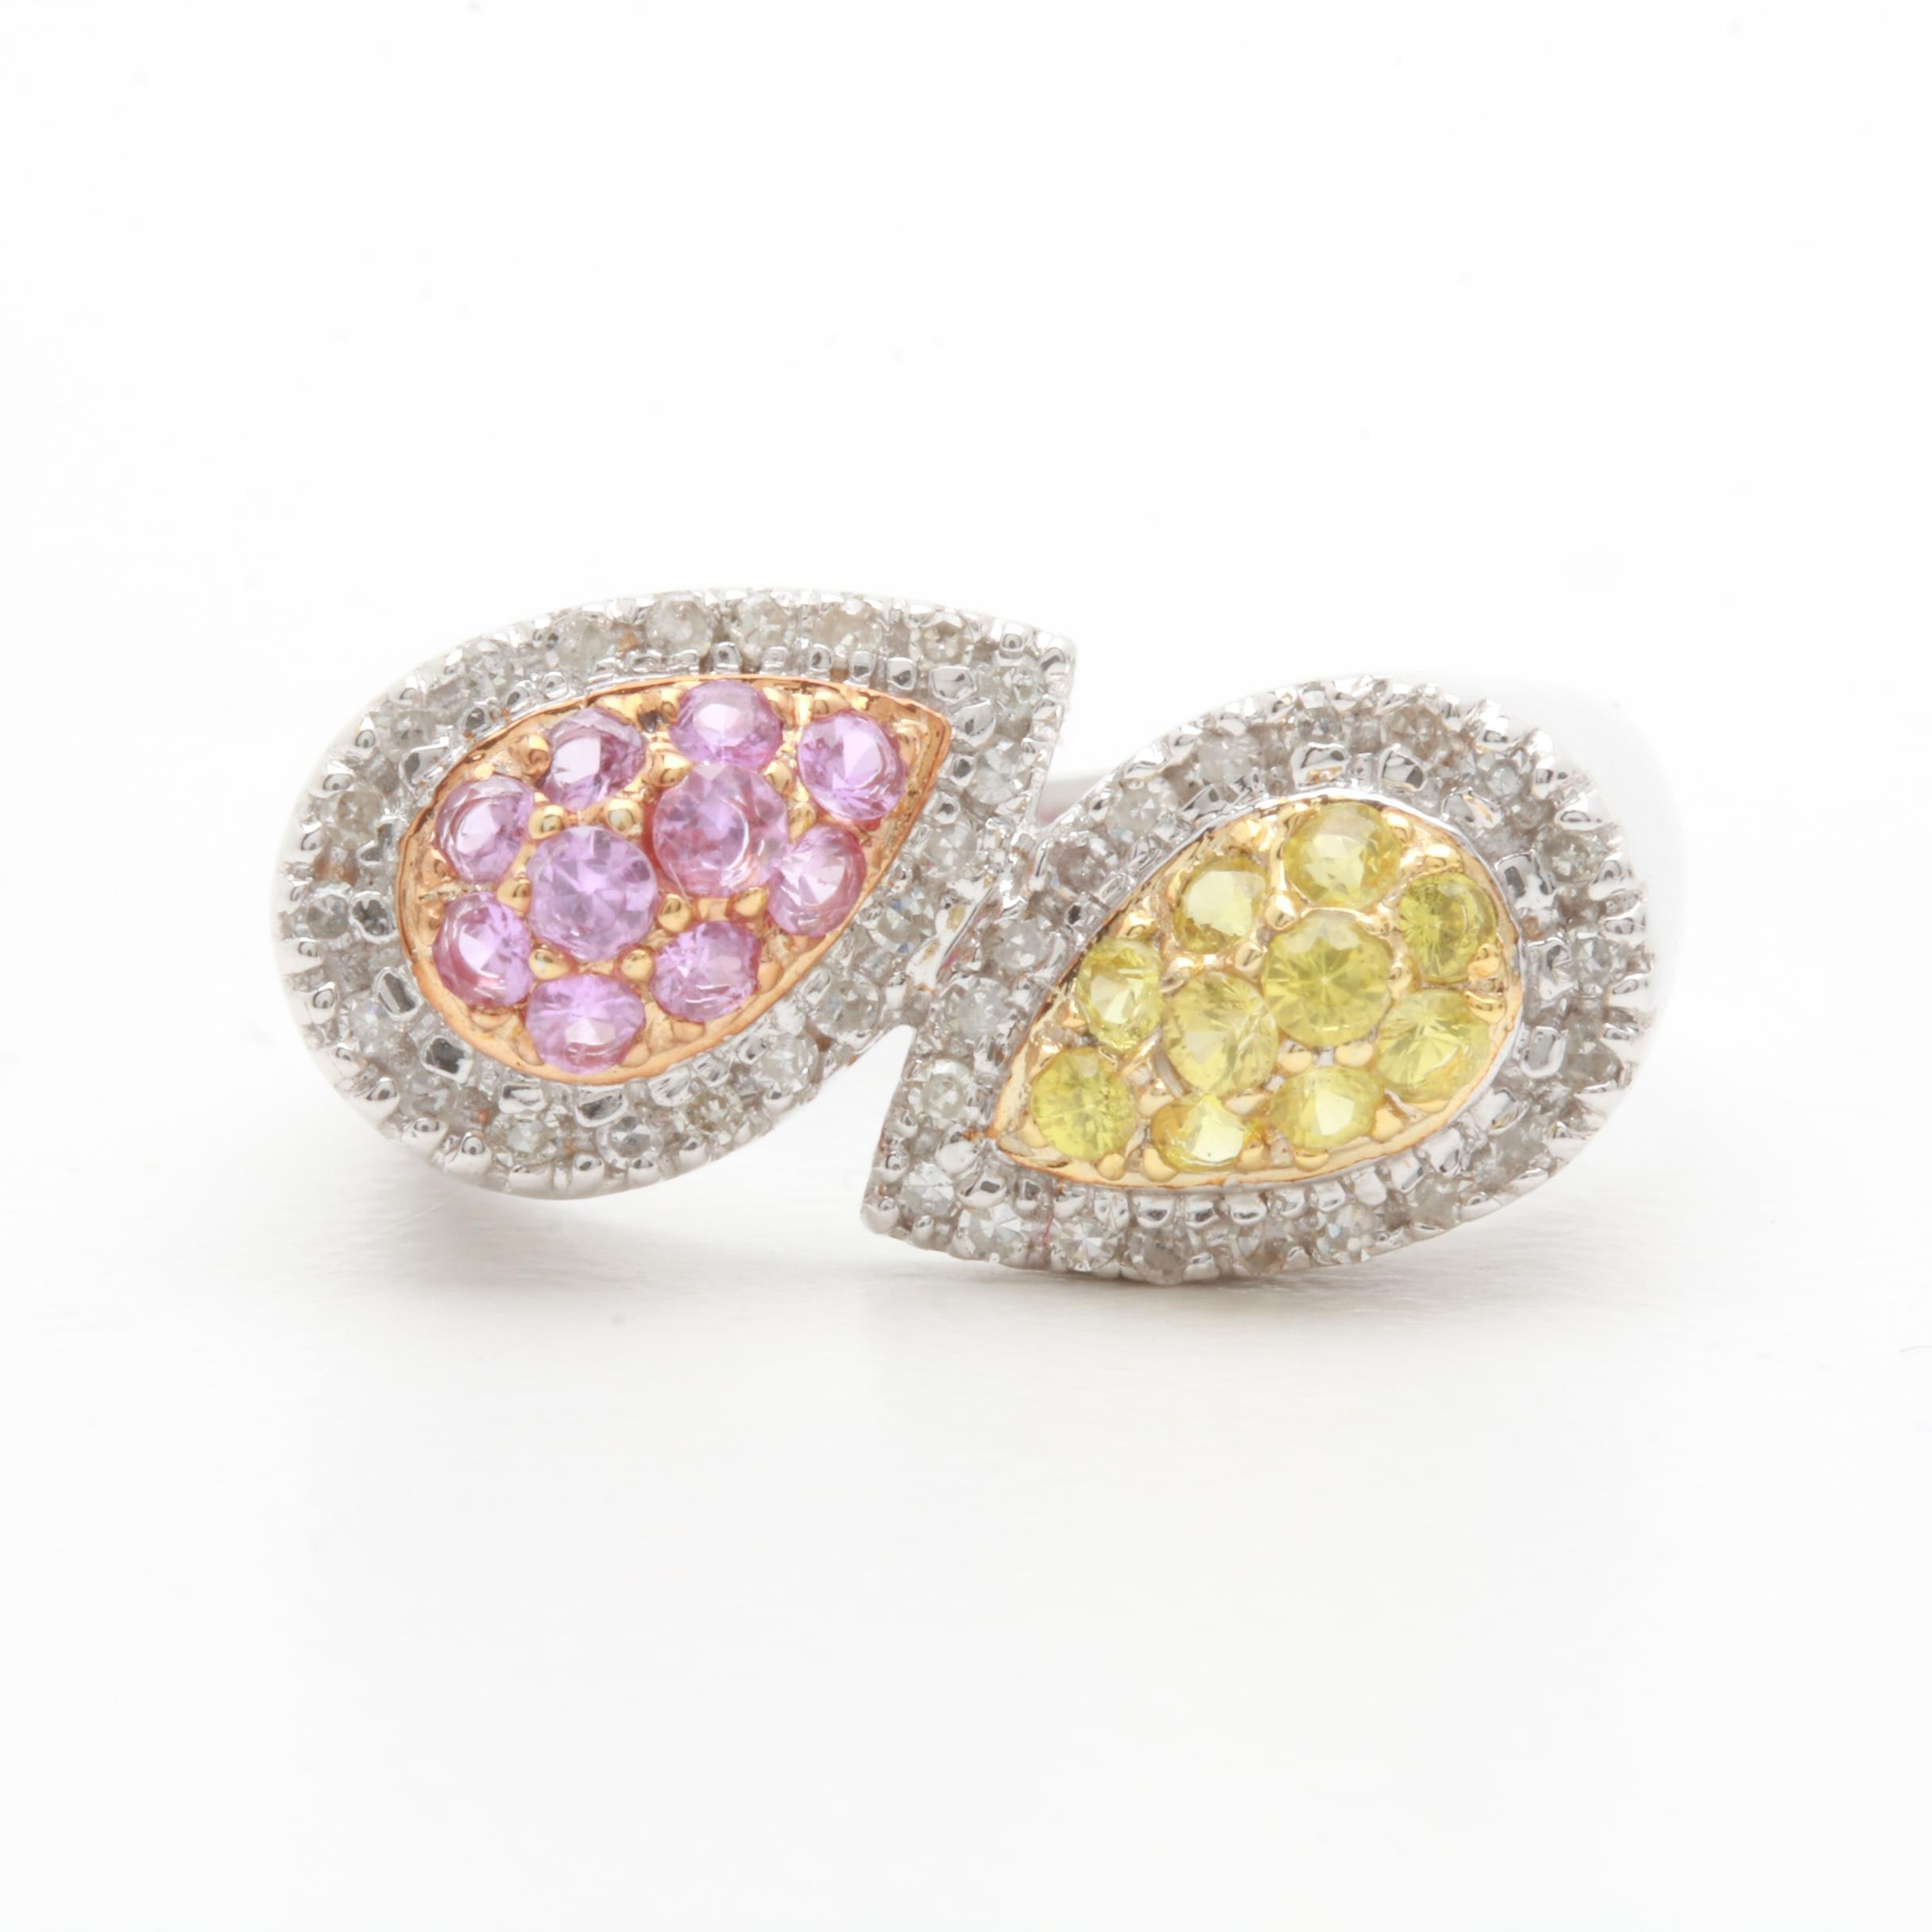 14K White Gold Pink Sapphire, Yellow Sapphire, and Diamond Ring